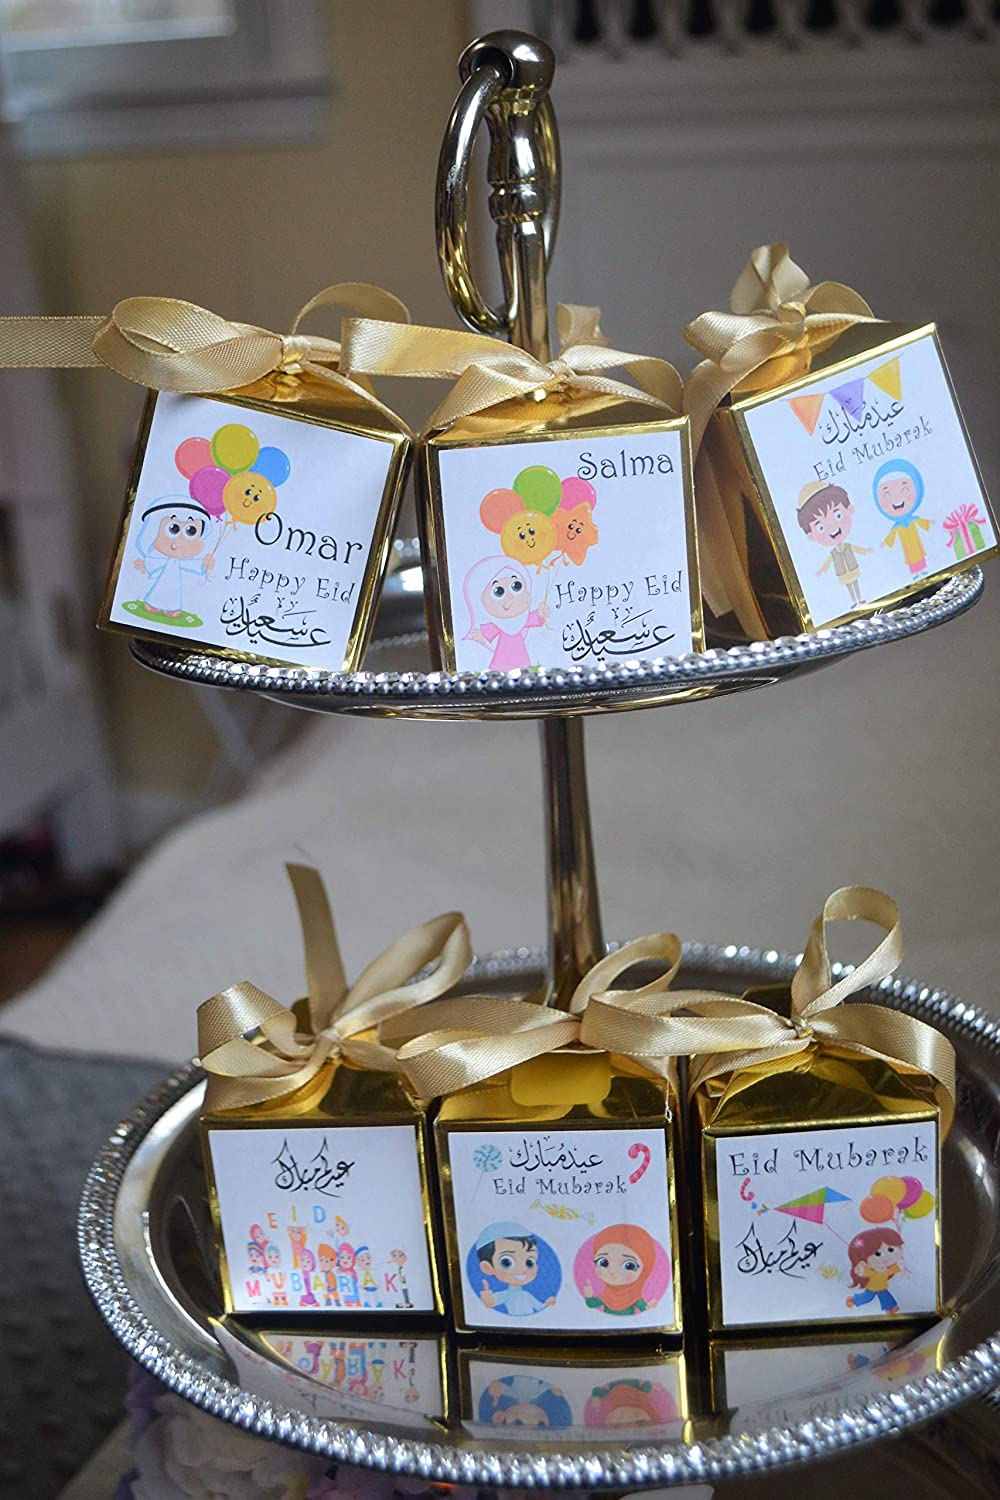 Ramadan candy box Eid candy boxes Eid kids favors and treats Set of 6 Ramadan Goodie bags Eid party supplies Eid gift bags Gold box